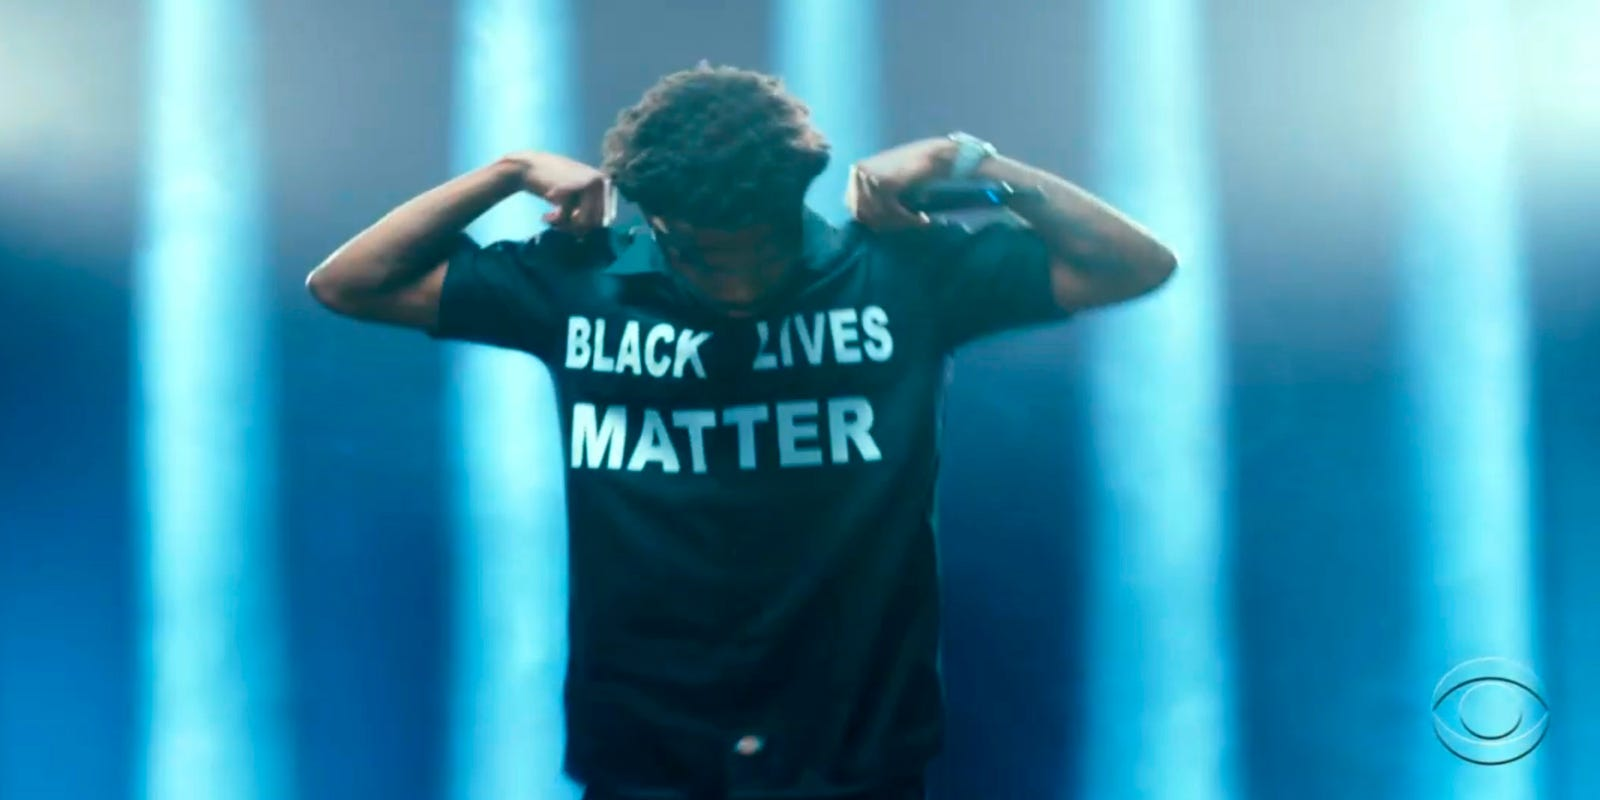 BET Awards 2020 Pays Tribute to Black Lives Matter